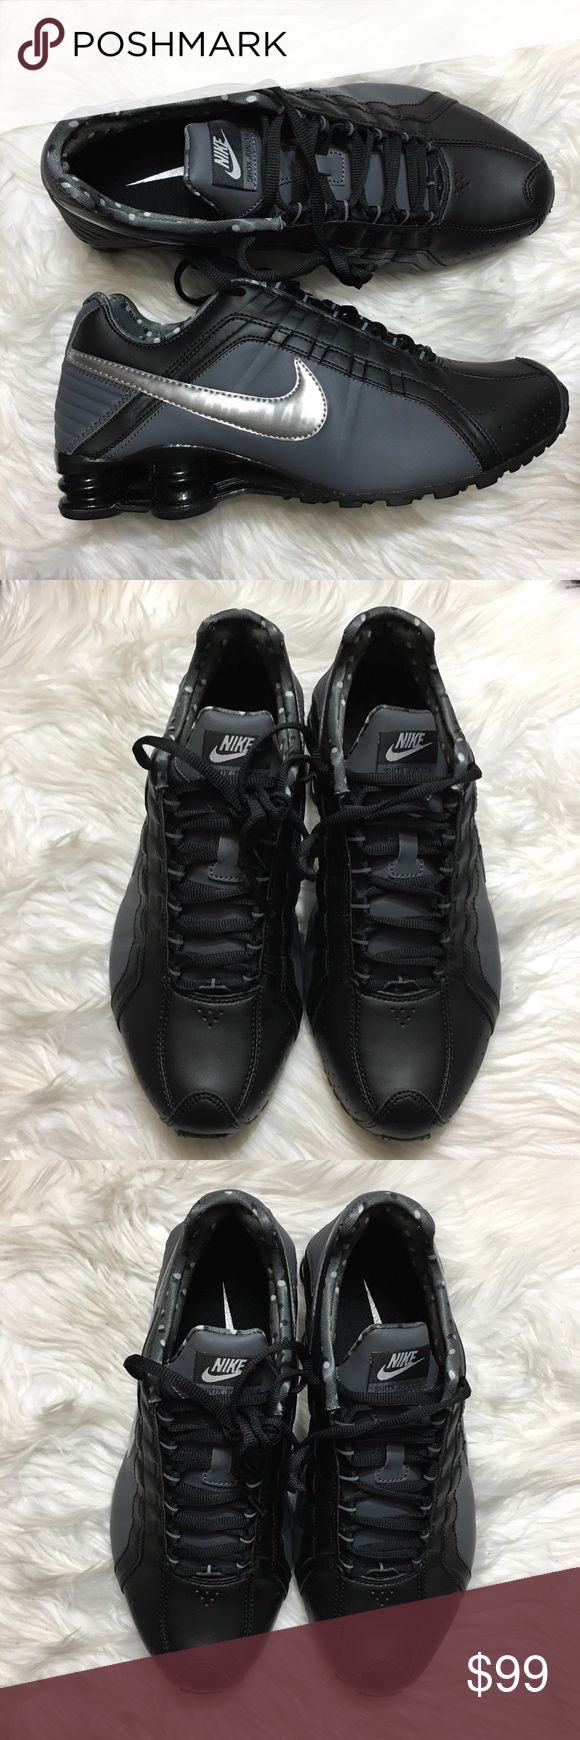 Nike Shox Junior BRAND NEW- ORIGINAL BOX NO LID  ✅PRICE CAN BE NEGOTIATED THROUGH OFFER BUTTON                                                                                                             ✅NEXT DAY SHIPPING ✅BUNDLES DISCOUNT                                                                 🙅🏻 NO TRADES 🙅🏻NO LOWBALLING Nike Shoes Athletic Shoes